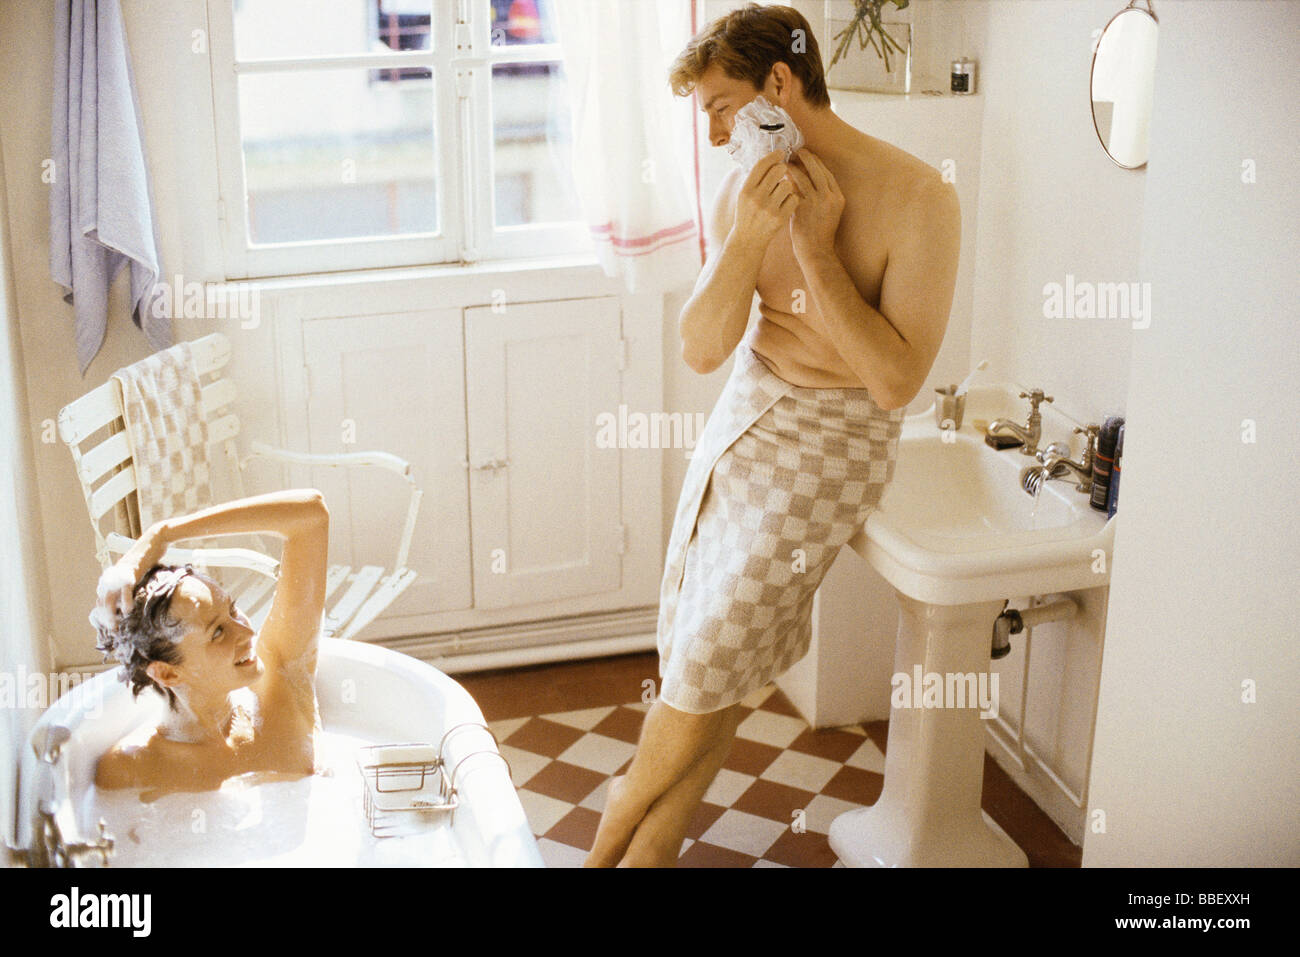 Couple together in bathroom, woman bathing, man leaning against sink, shaving - Stock Image